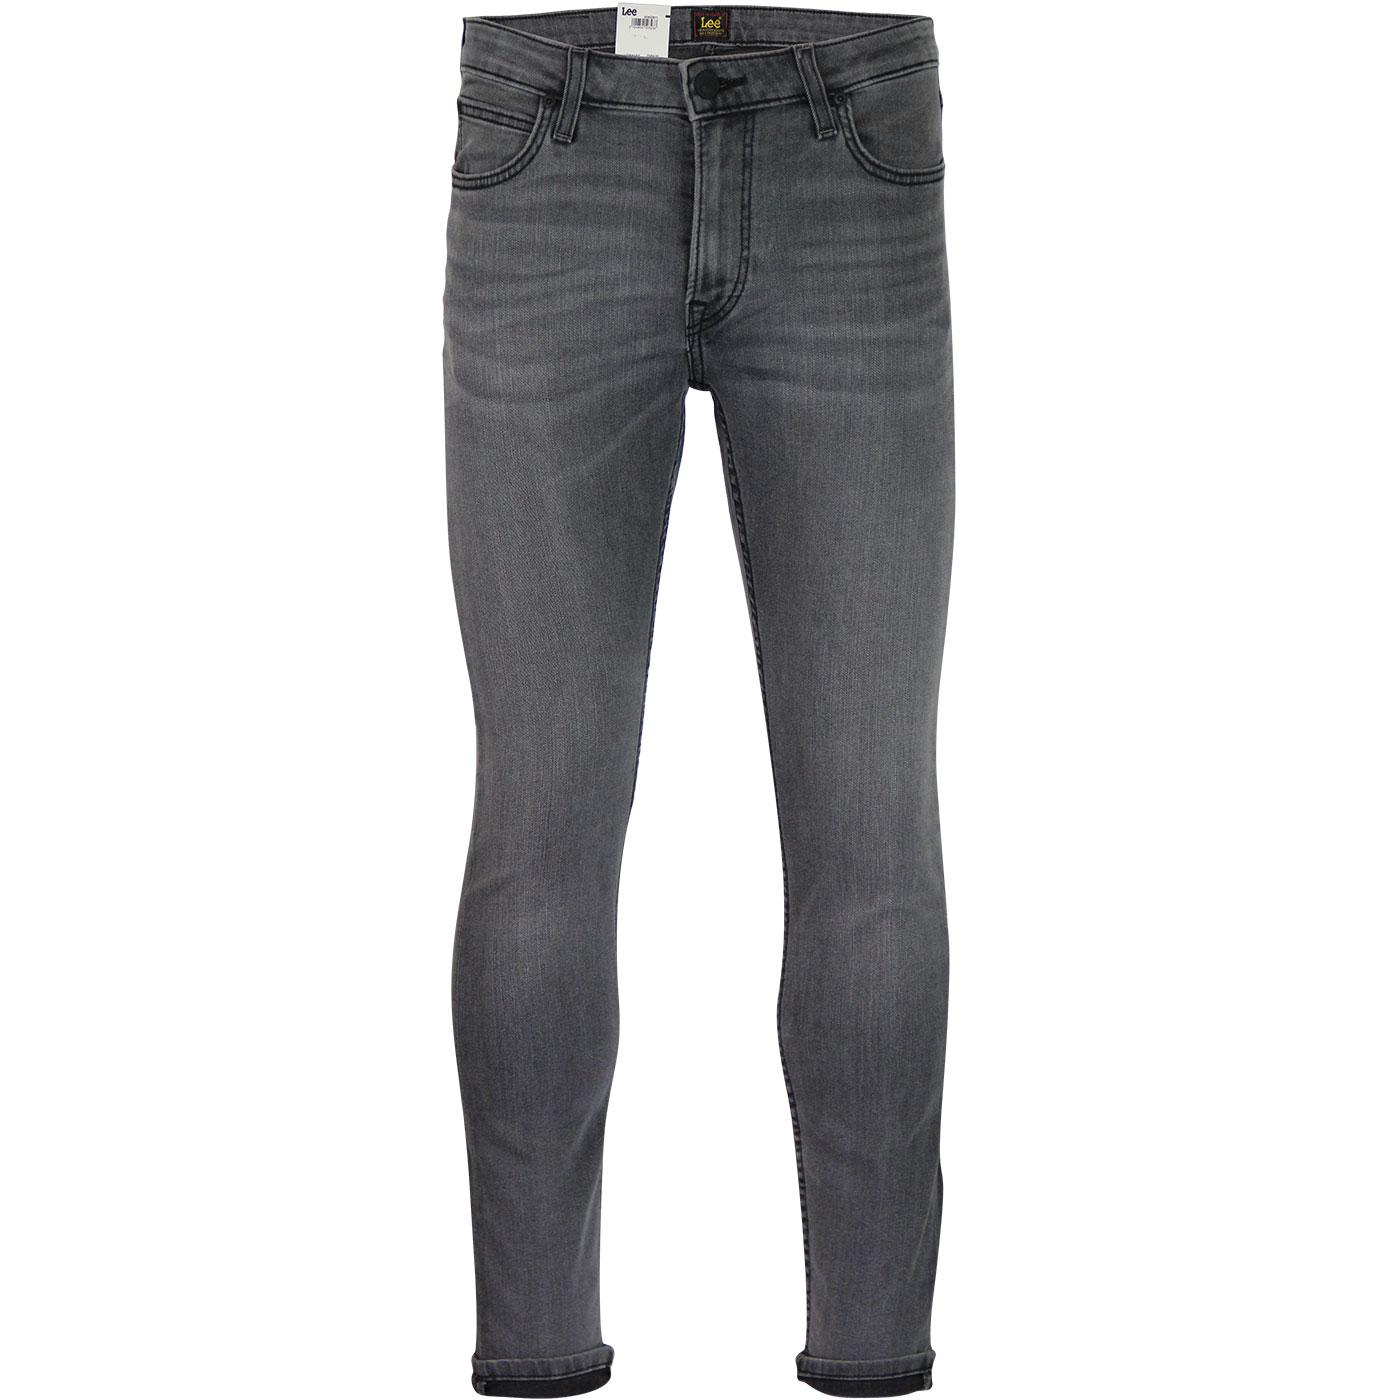 Malone LEE JEANS Retro Skinny Jeans NEW GREY